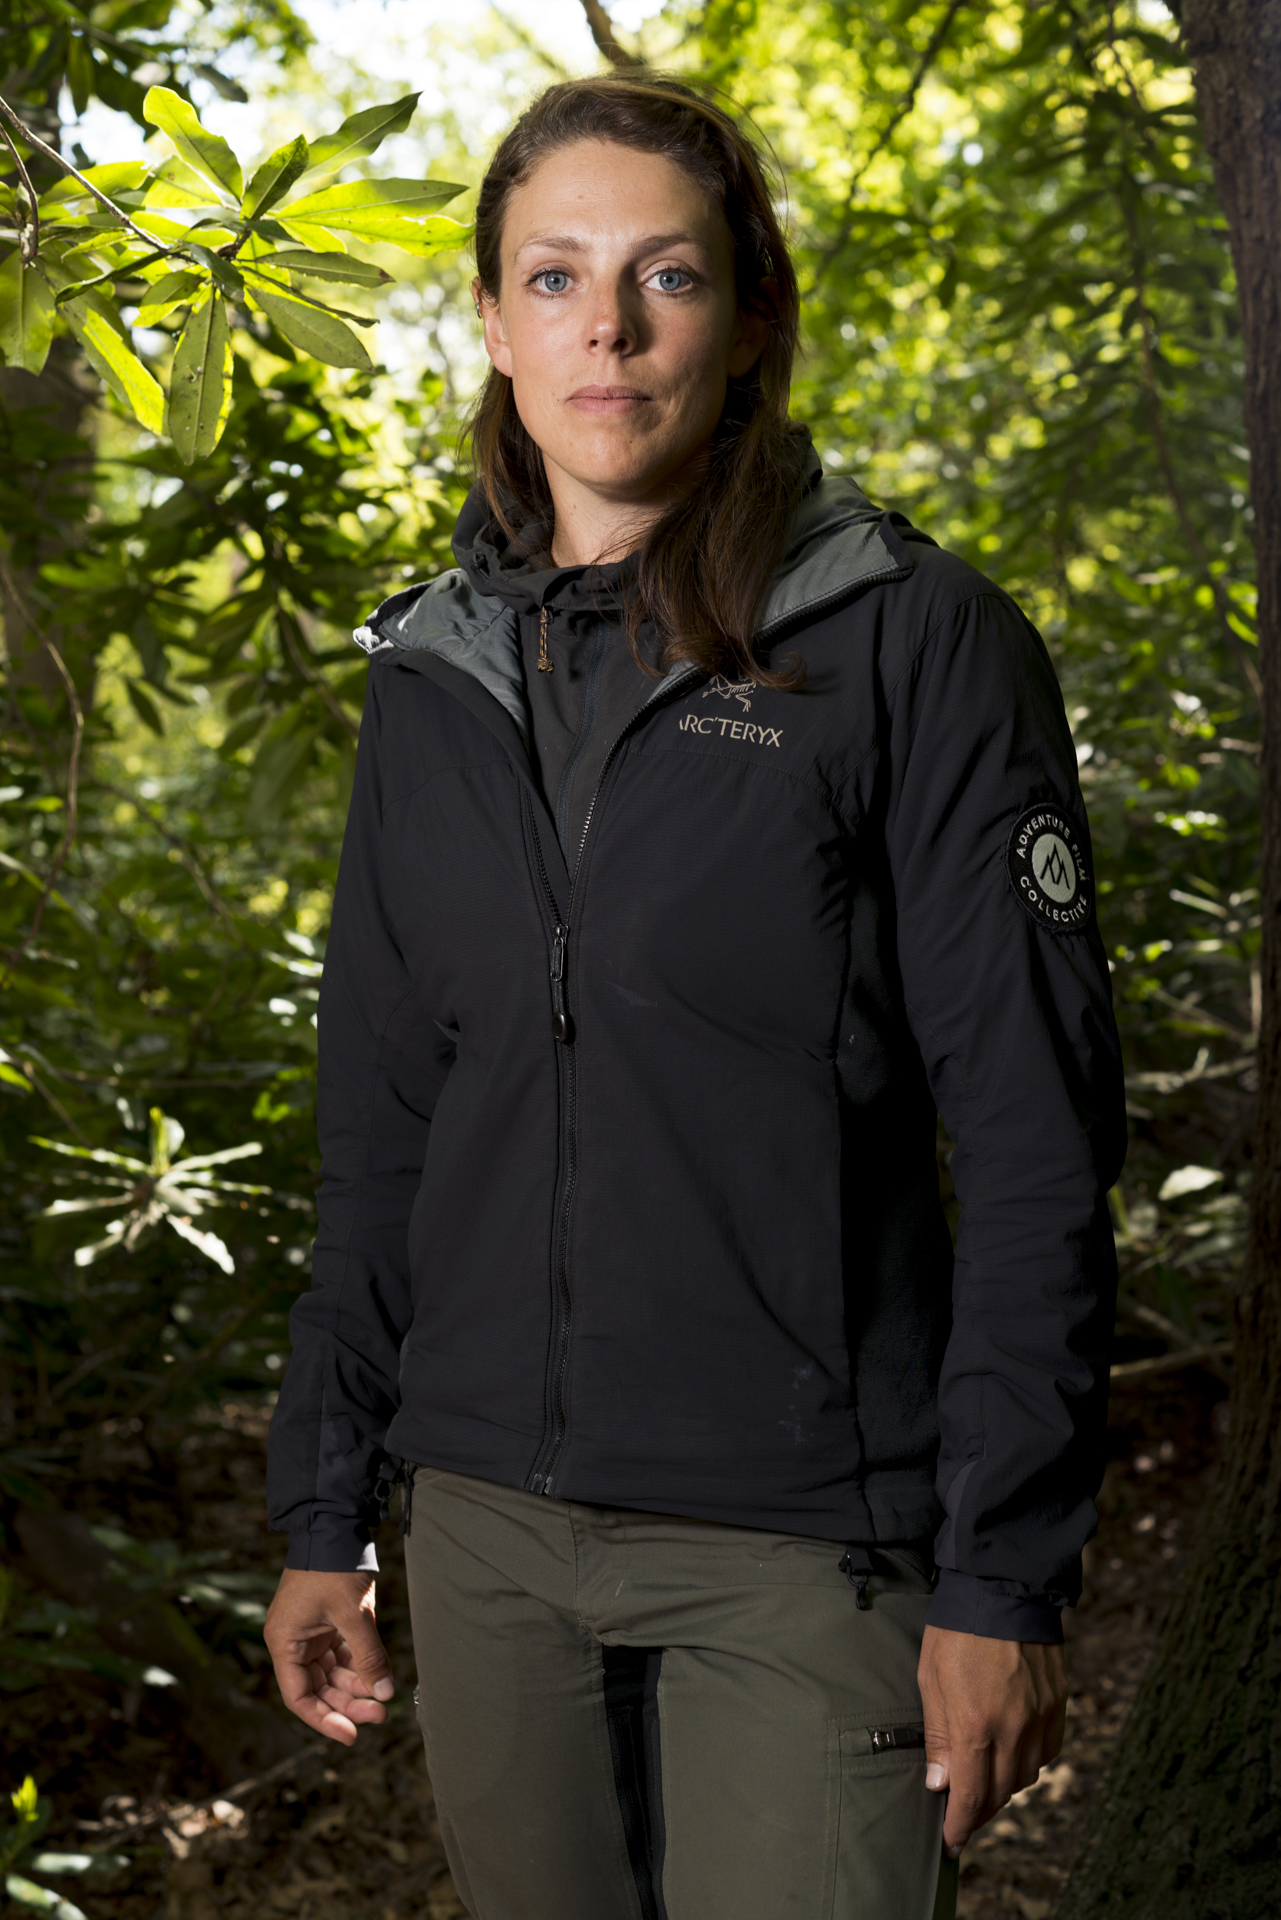 Megan Hines, author and survival expert -  The Times, London